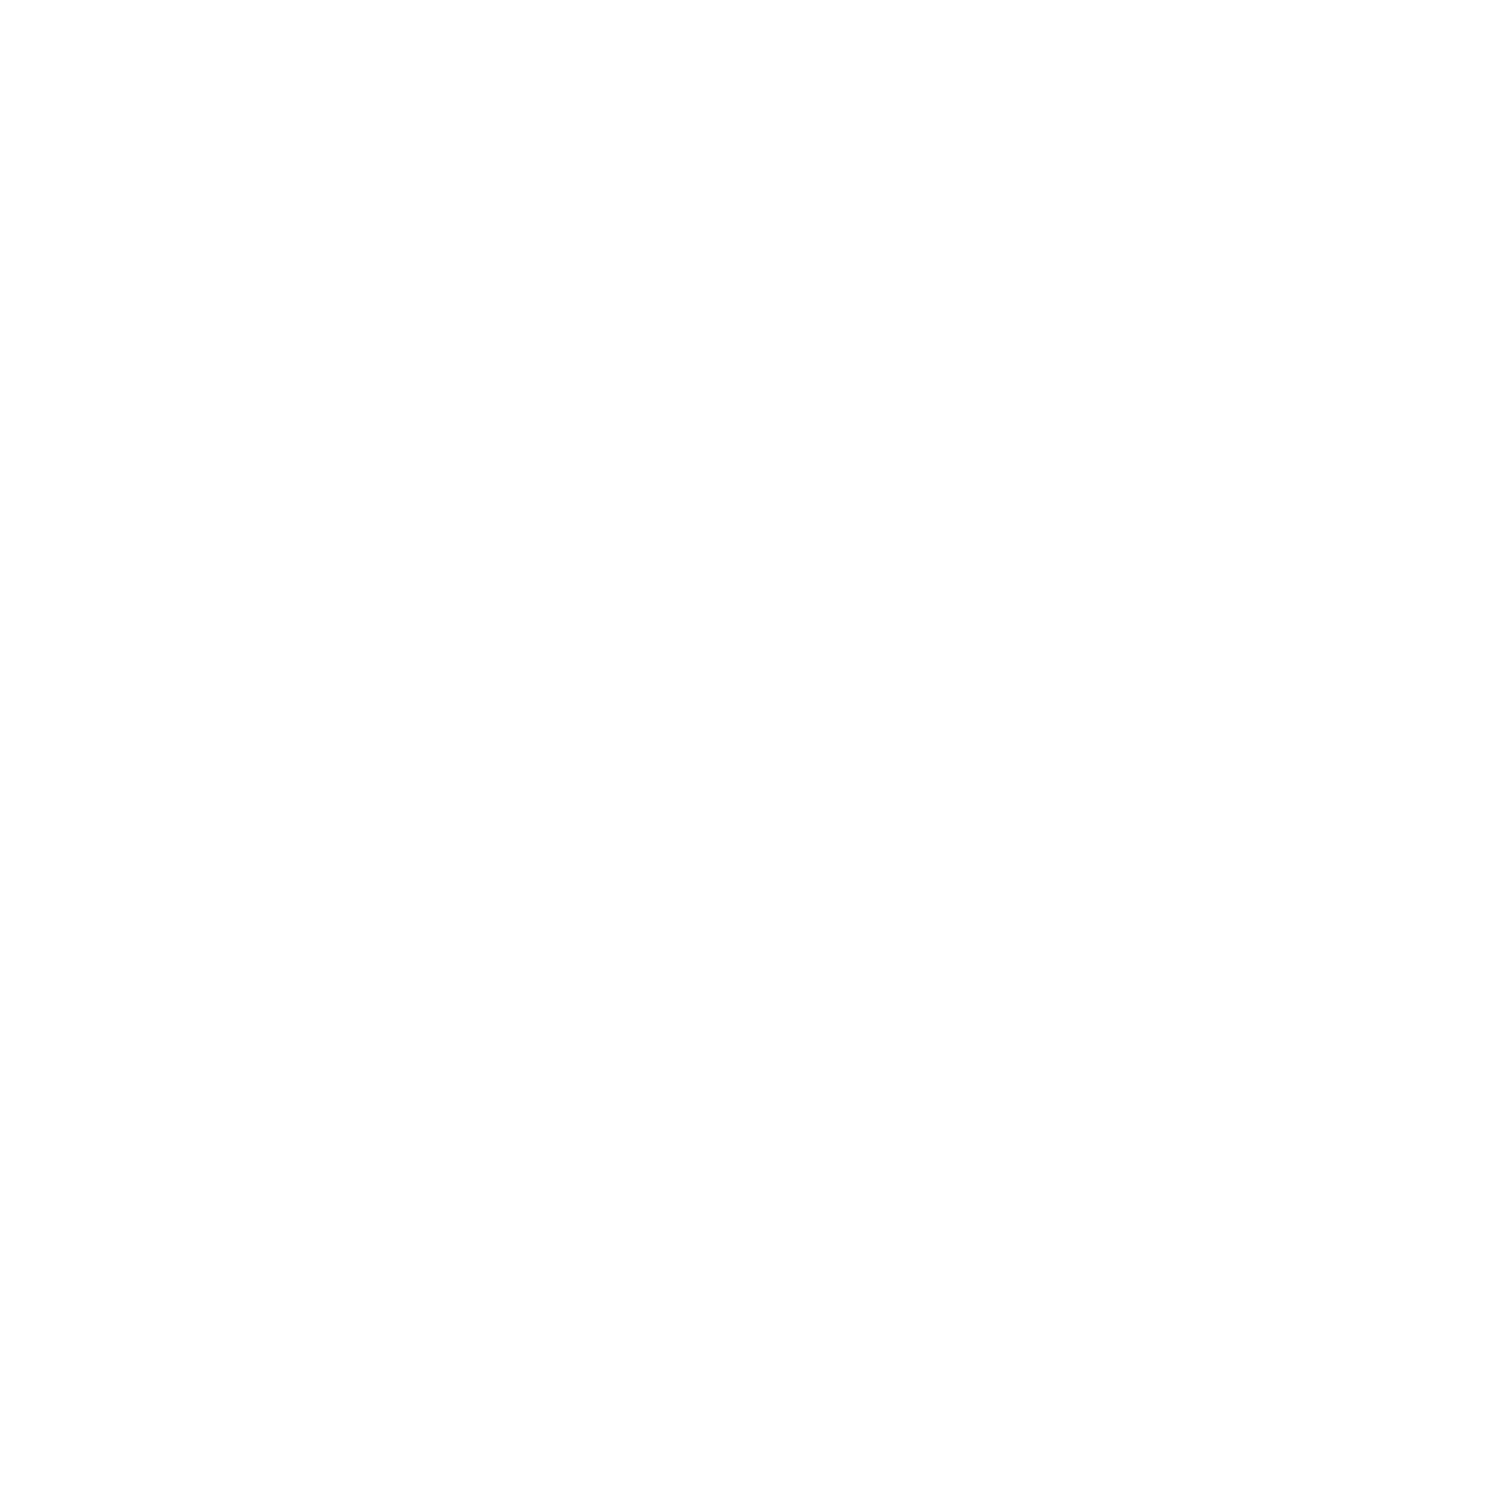 Humble Cocktails